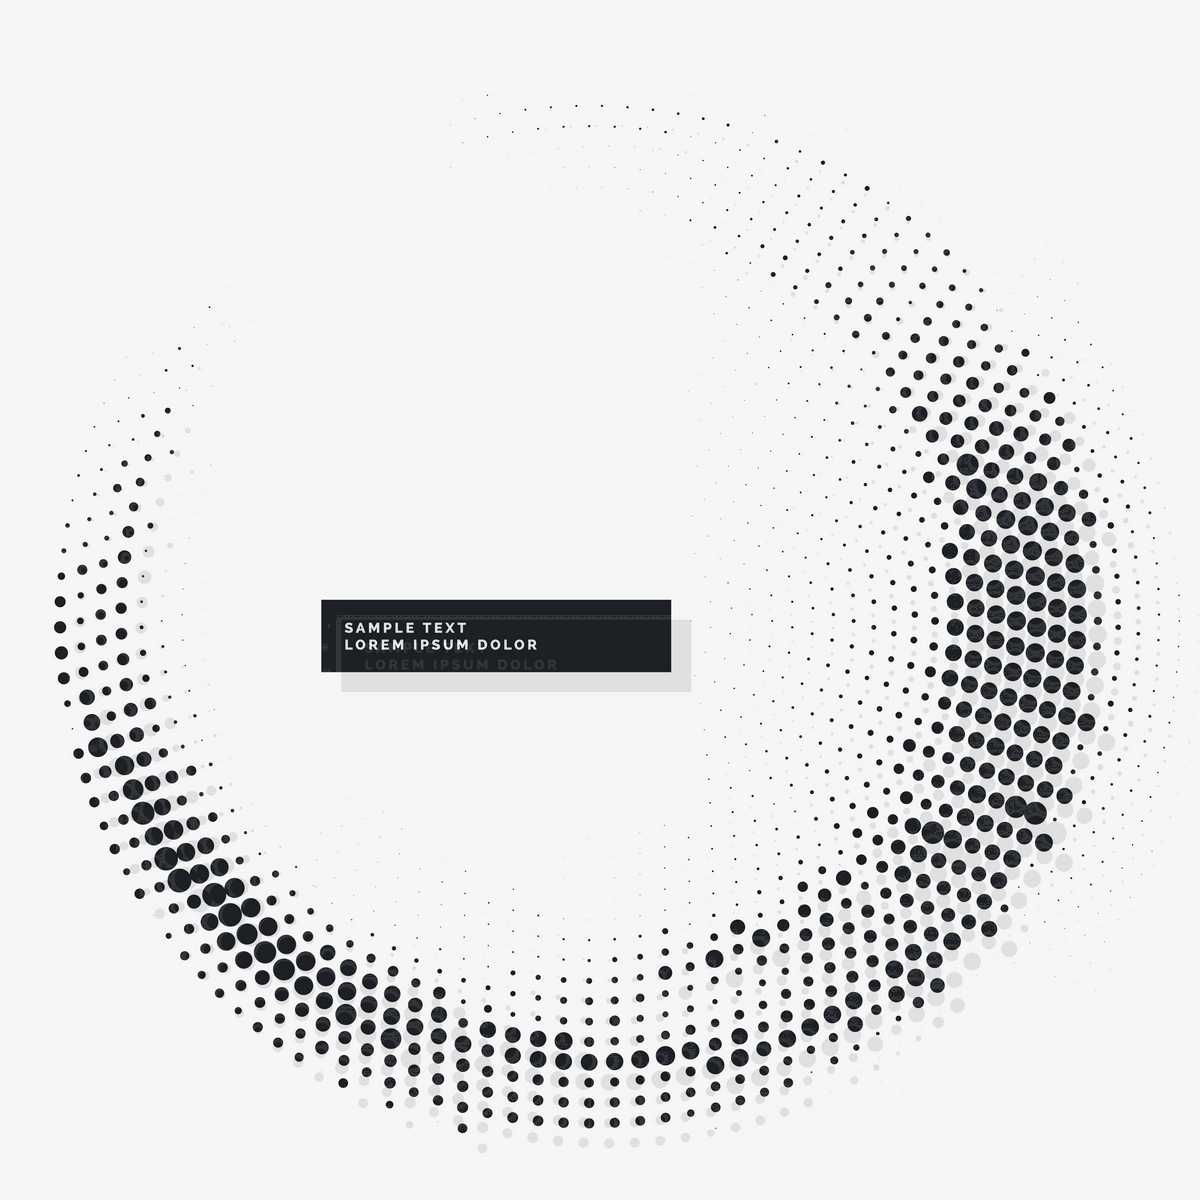 Circular White Background With Dots - FREE | Abstracts | Pinterest